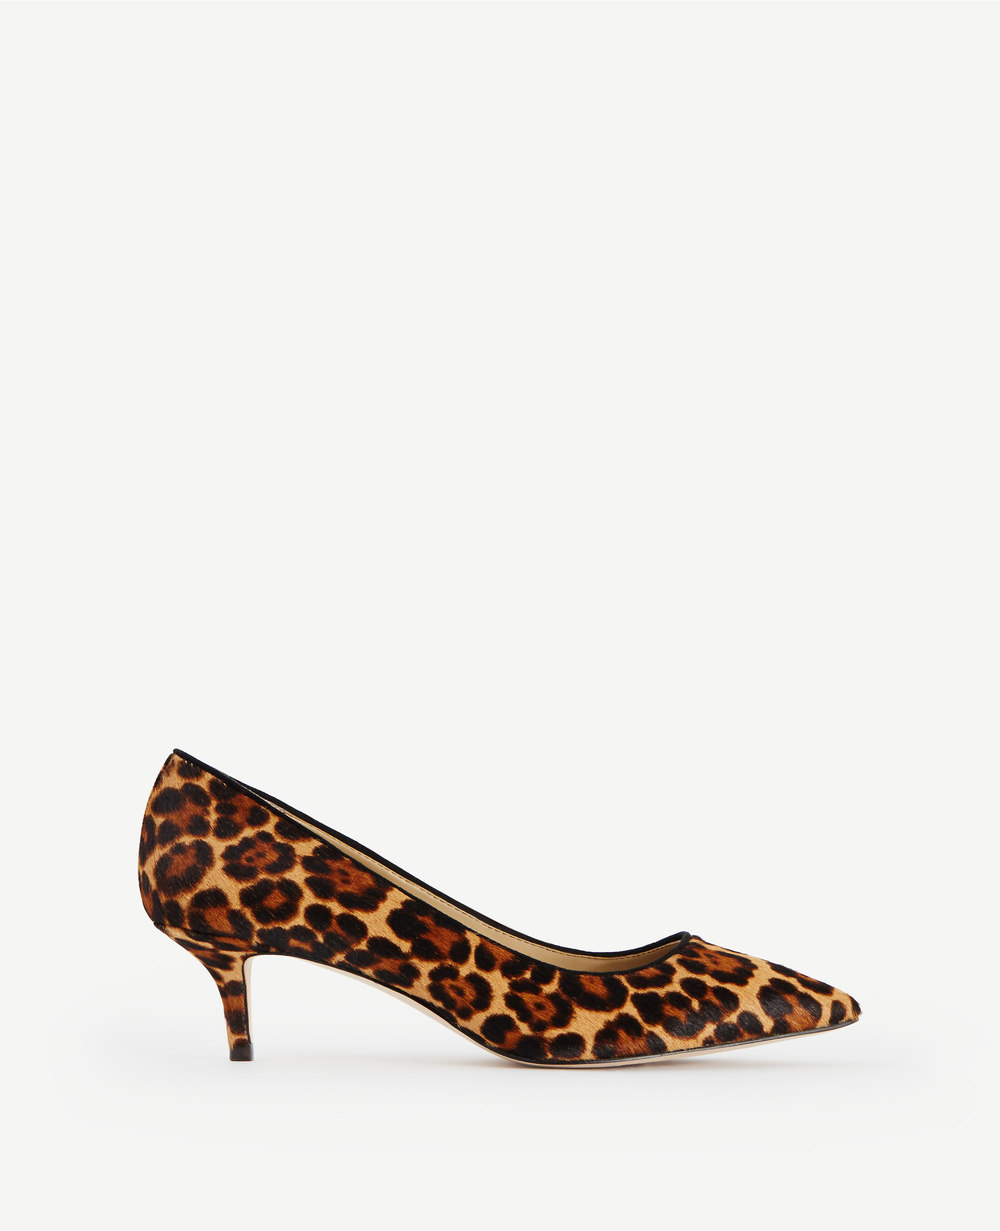 """Reese Leopard Print Haircalf (AKA, """"pony"""") Pumps. Ann Taylor. $148. Additional 40% off with code: FRIENDS40."""